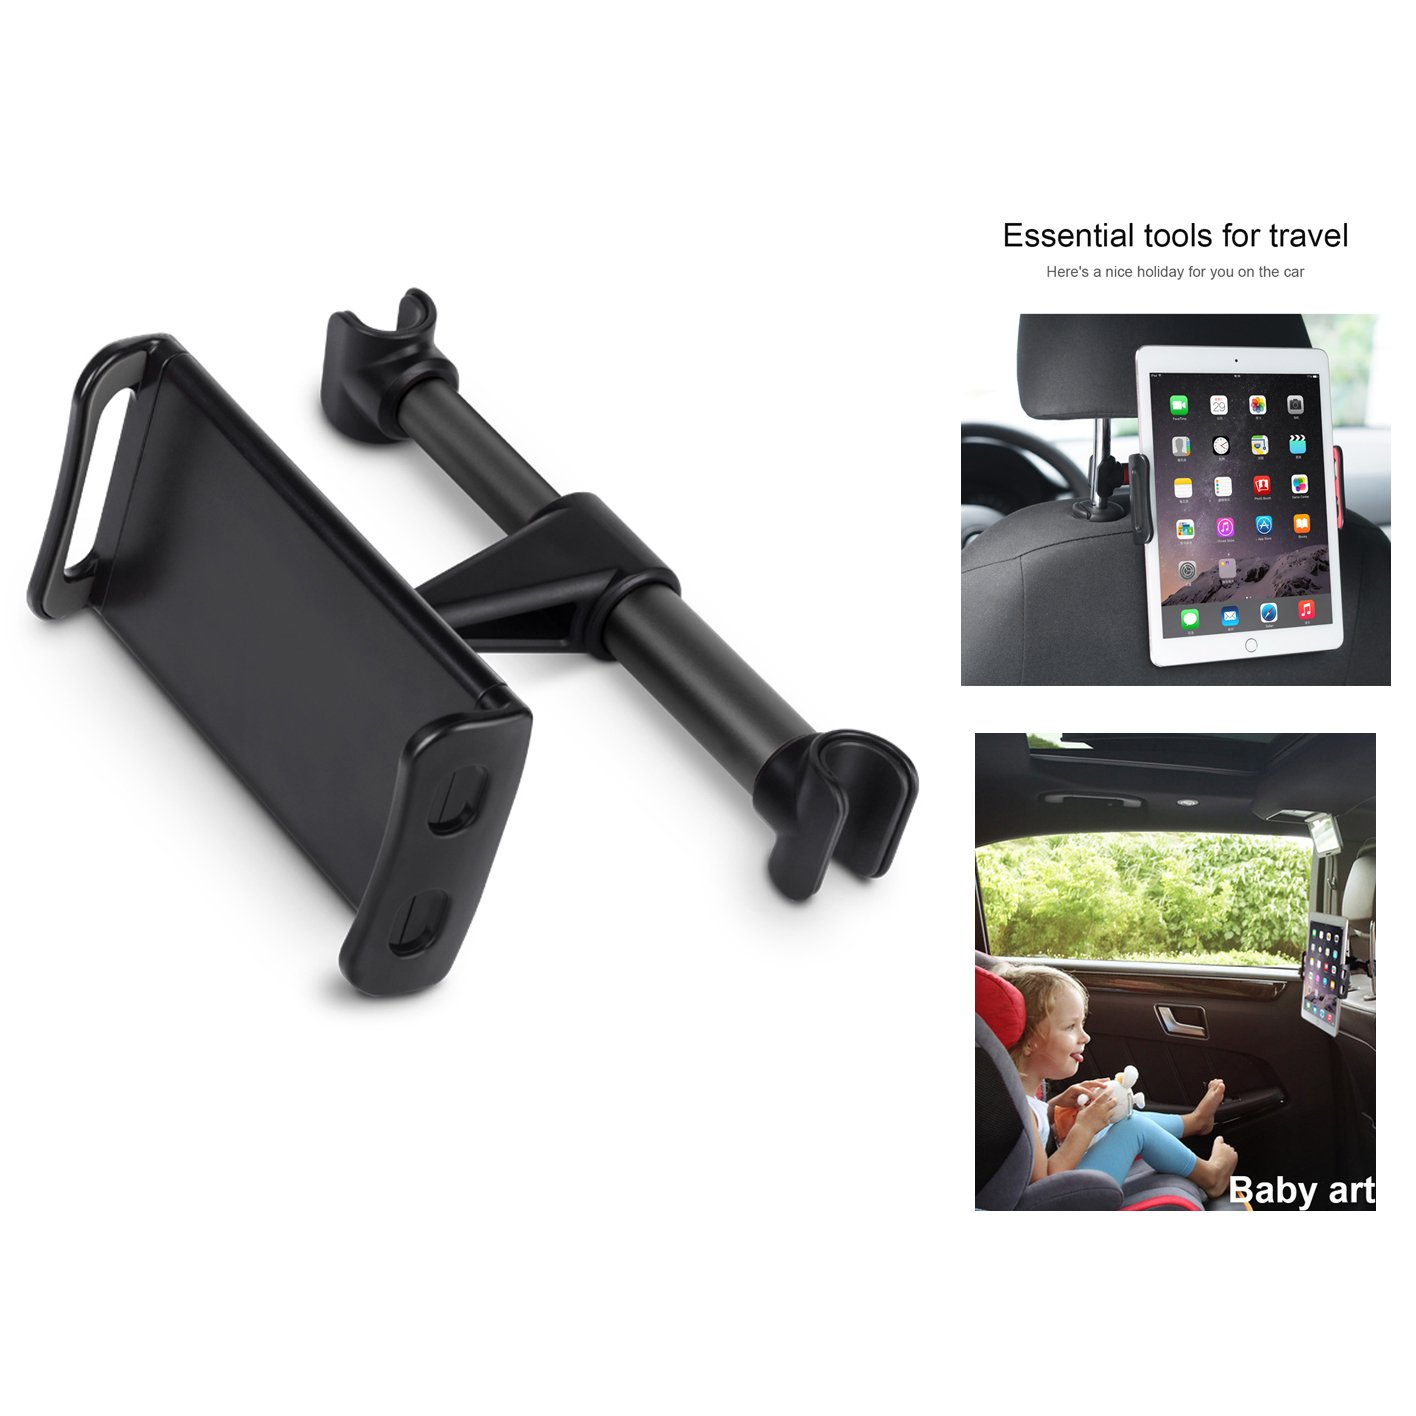 """Car Headrest Mount, Yuntone Car Seat Tablet Holder for iPad/Samsung Galaxy Tabs/Amazon Kindle Fire HD/Nintendo Switch/Other Devices 4""""-10.1"""" (Black) by Yuntone (Image #6)"""